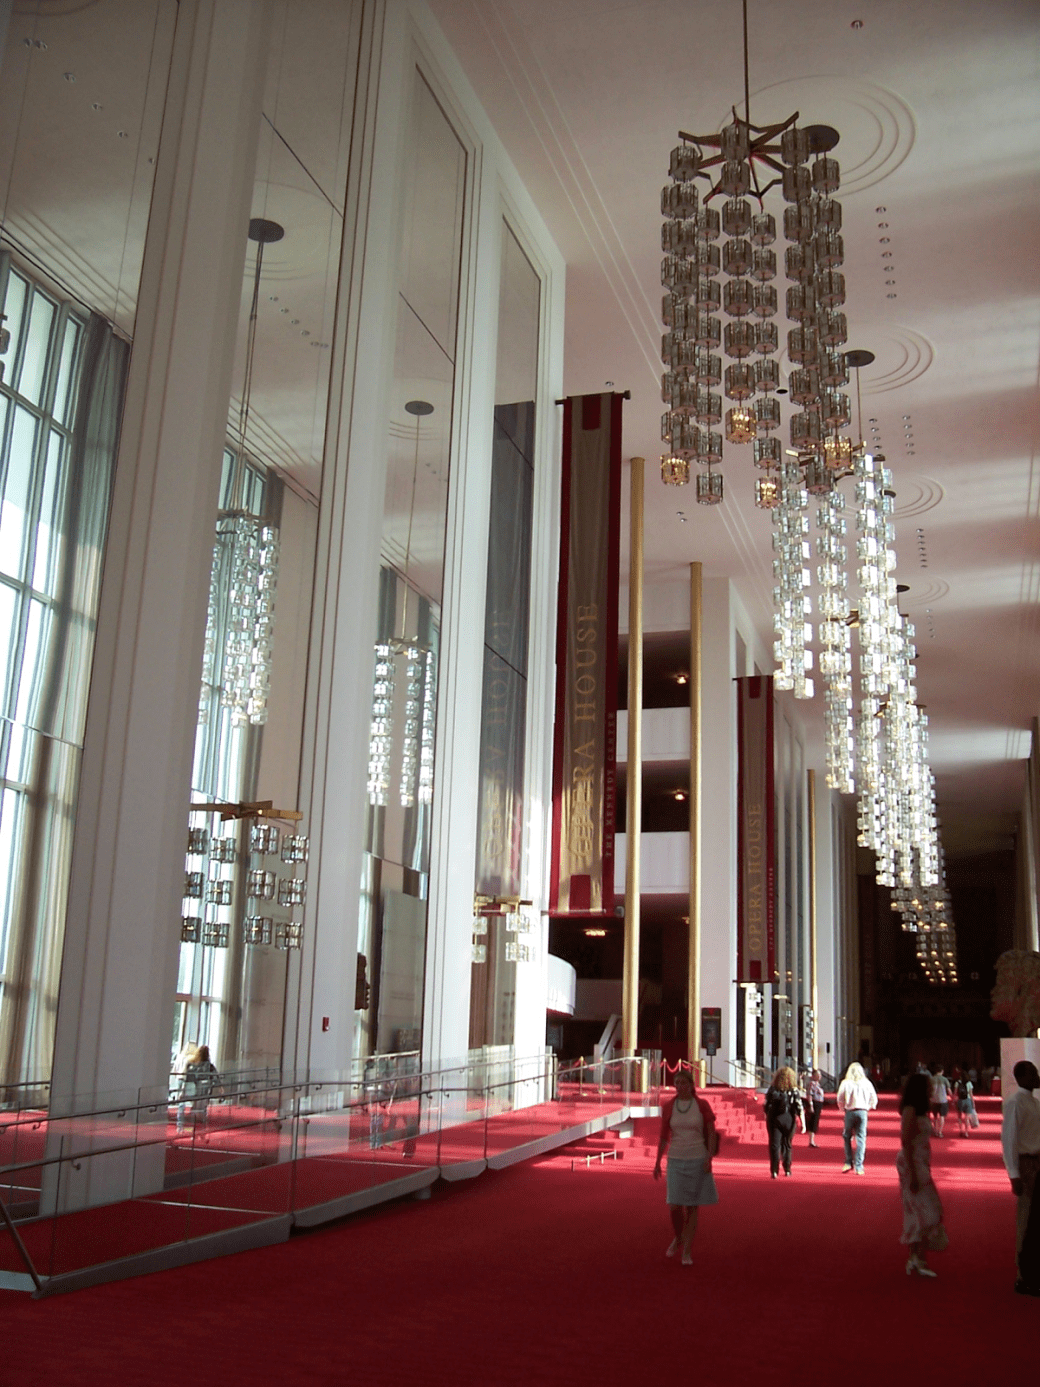 Grand Foyer of the Kennedy Center for the Performing Arts in Washington D.C, 1971.